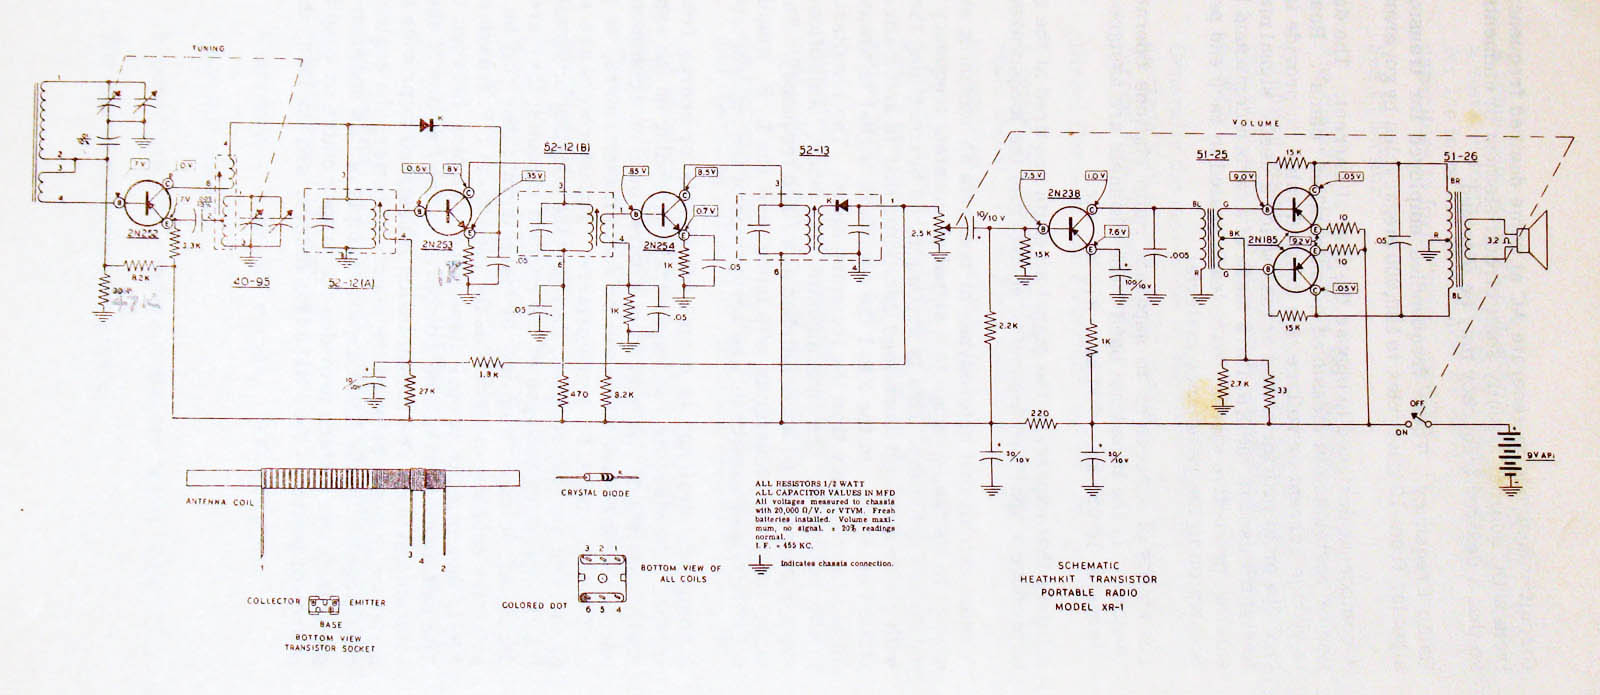 hight resolution of i believe i narrowed down an issue but need to understand what is typical since this is my first transistor radio rework here is the schematic for